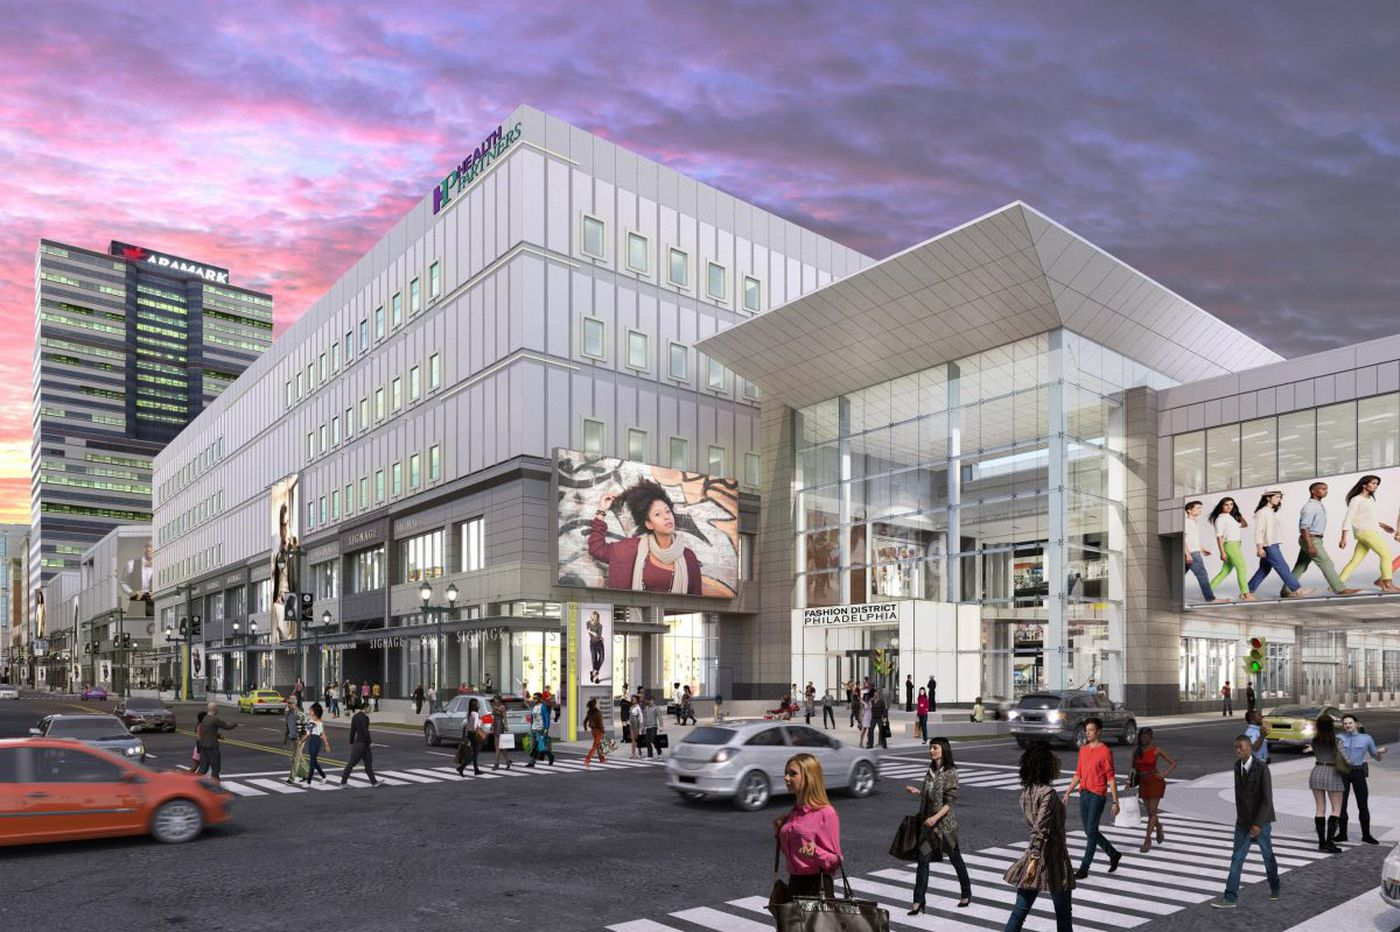 Outlets are out, H&M and movies are in, as Gallery redevelopers retool